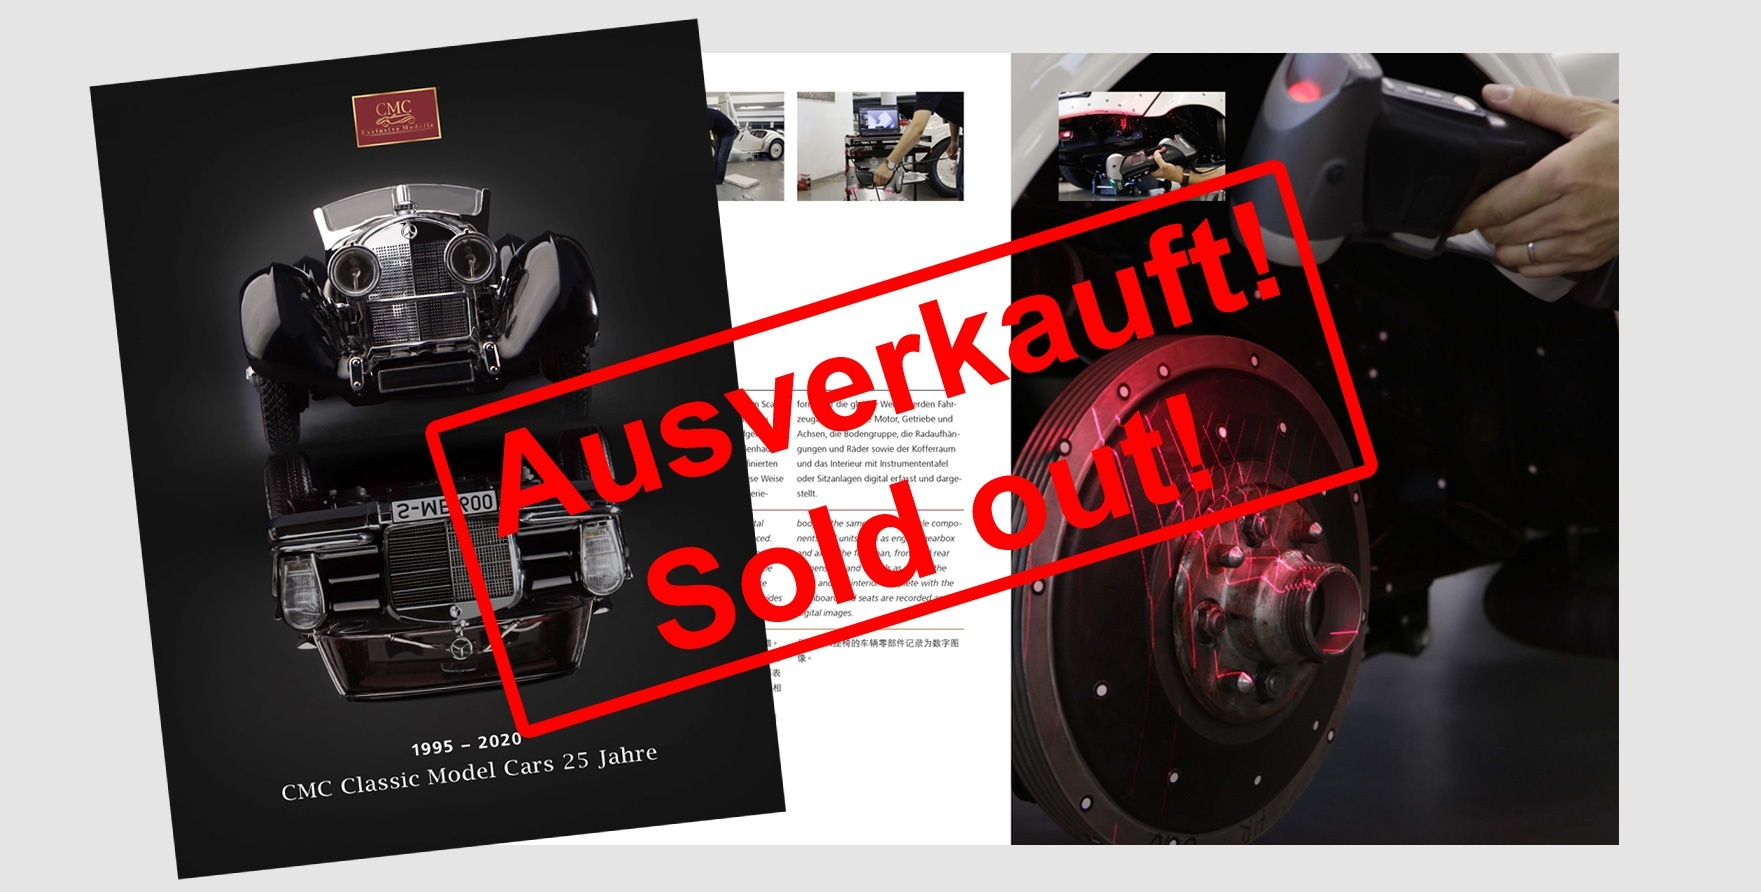 S 010 Sold Out